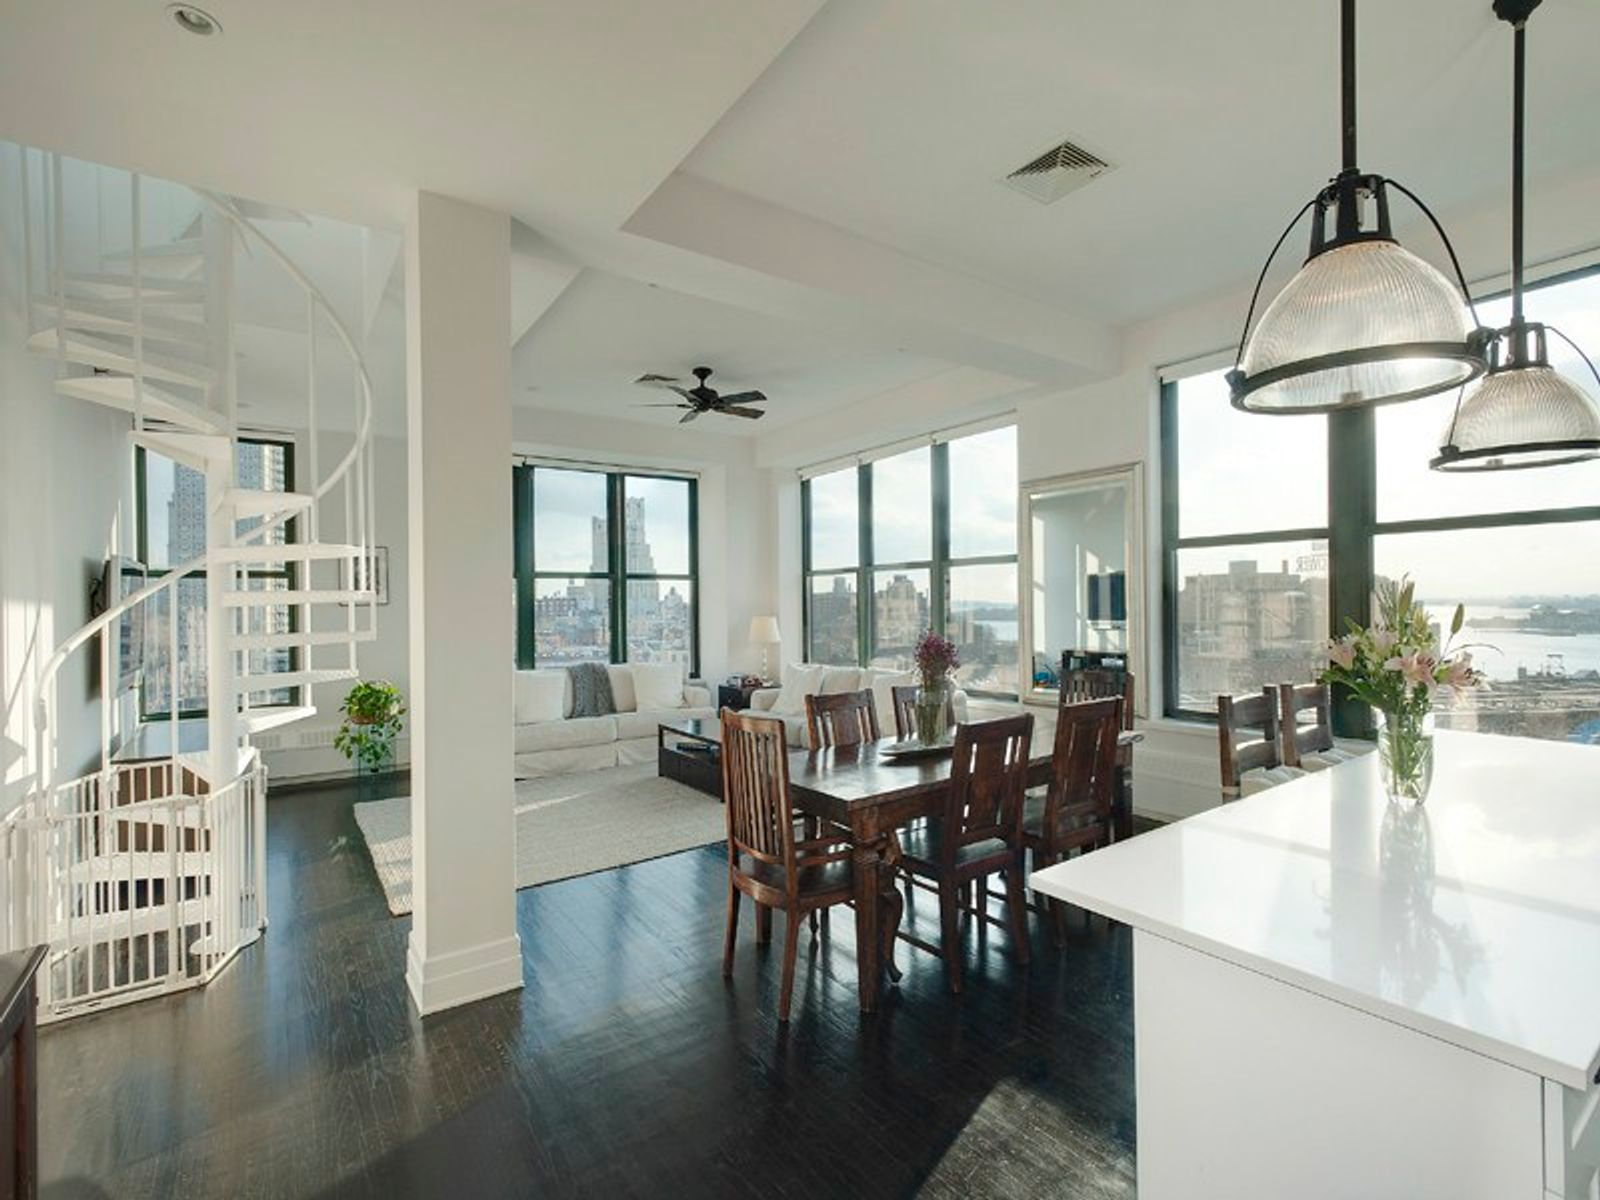 Stunning Sweeney Penthouse with Terrace, Brooklyn NY Condominium - New York City Real Estate